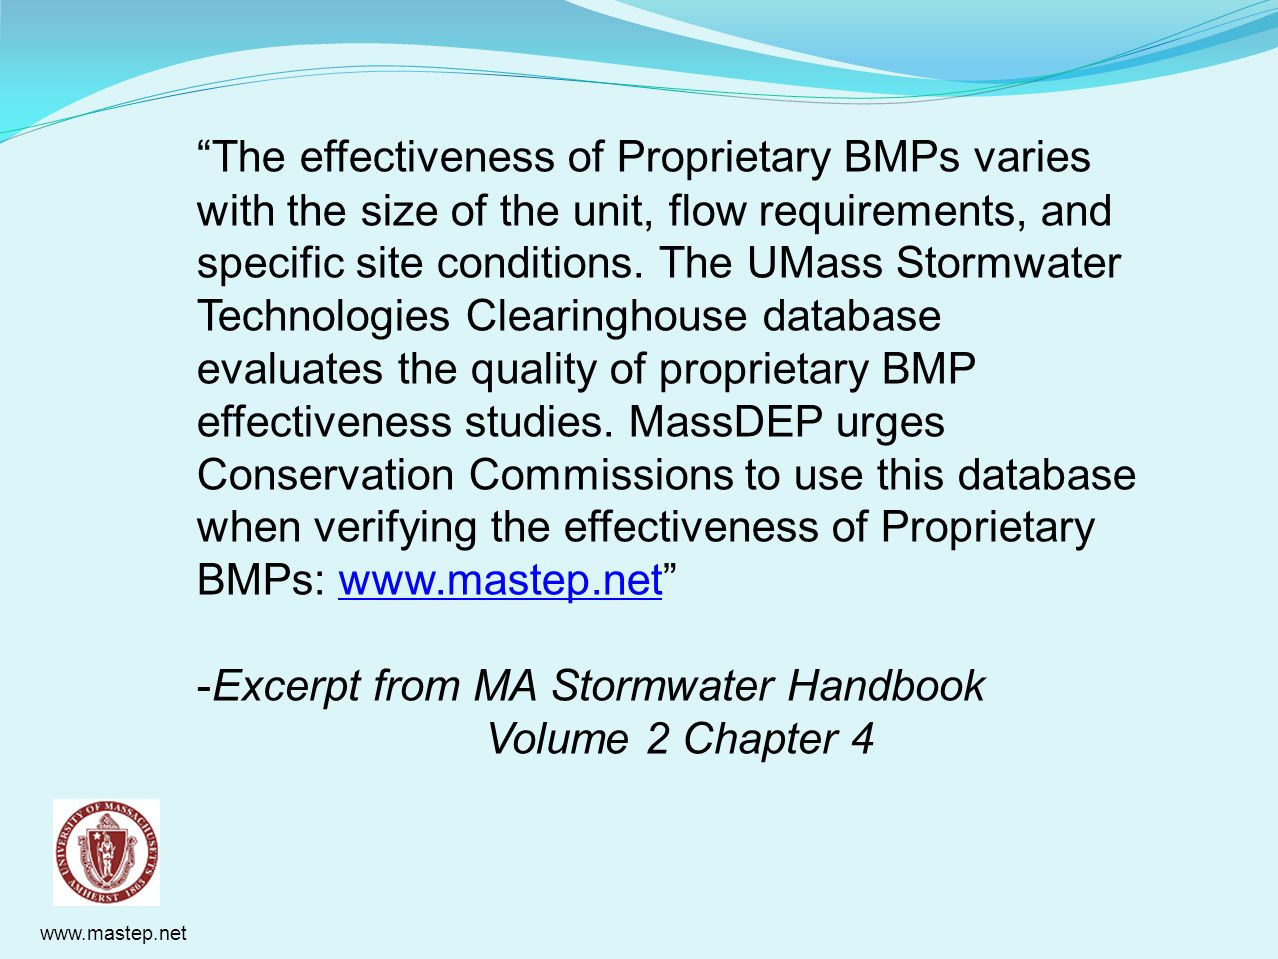 The effectiveness of Proprietary BMPs varies with the size of the unit, flow requirements, and specific site conditions. The UMass Stormwater Technologies Clearinghouse database evaluates the quality of proprietary BMP effectiveness studies. MassDEP urges Conservation Commissions to use this database when verifying the effectiveness of Proprietary BMPs: www.mastep.net